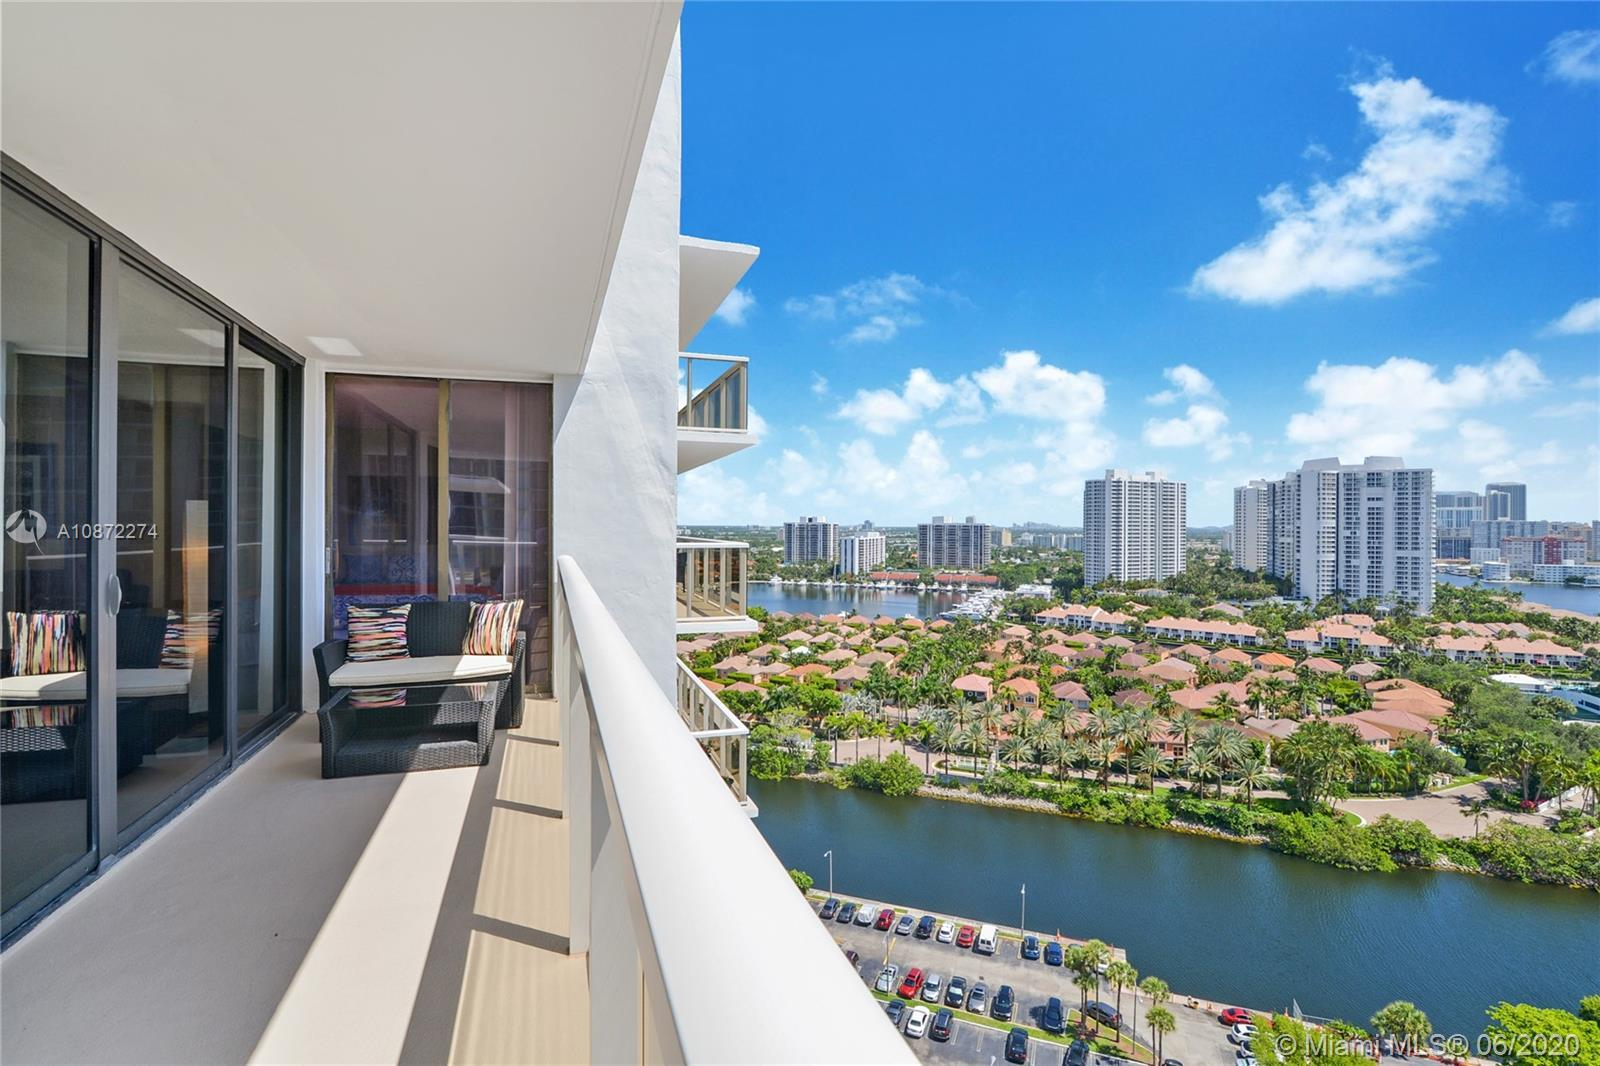 Spilt 2 bedroom, 2 bath residence on high floor with lovely ocean and intracoastal view.  Updated ki